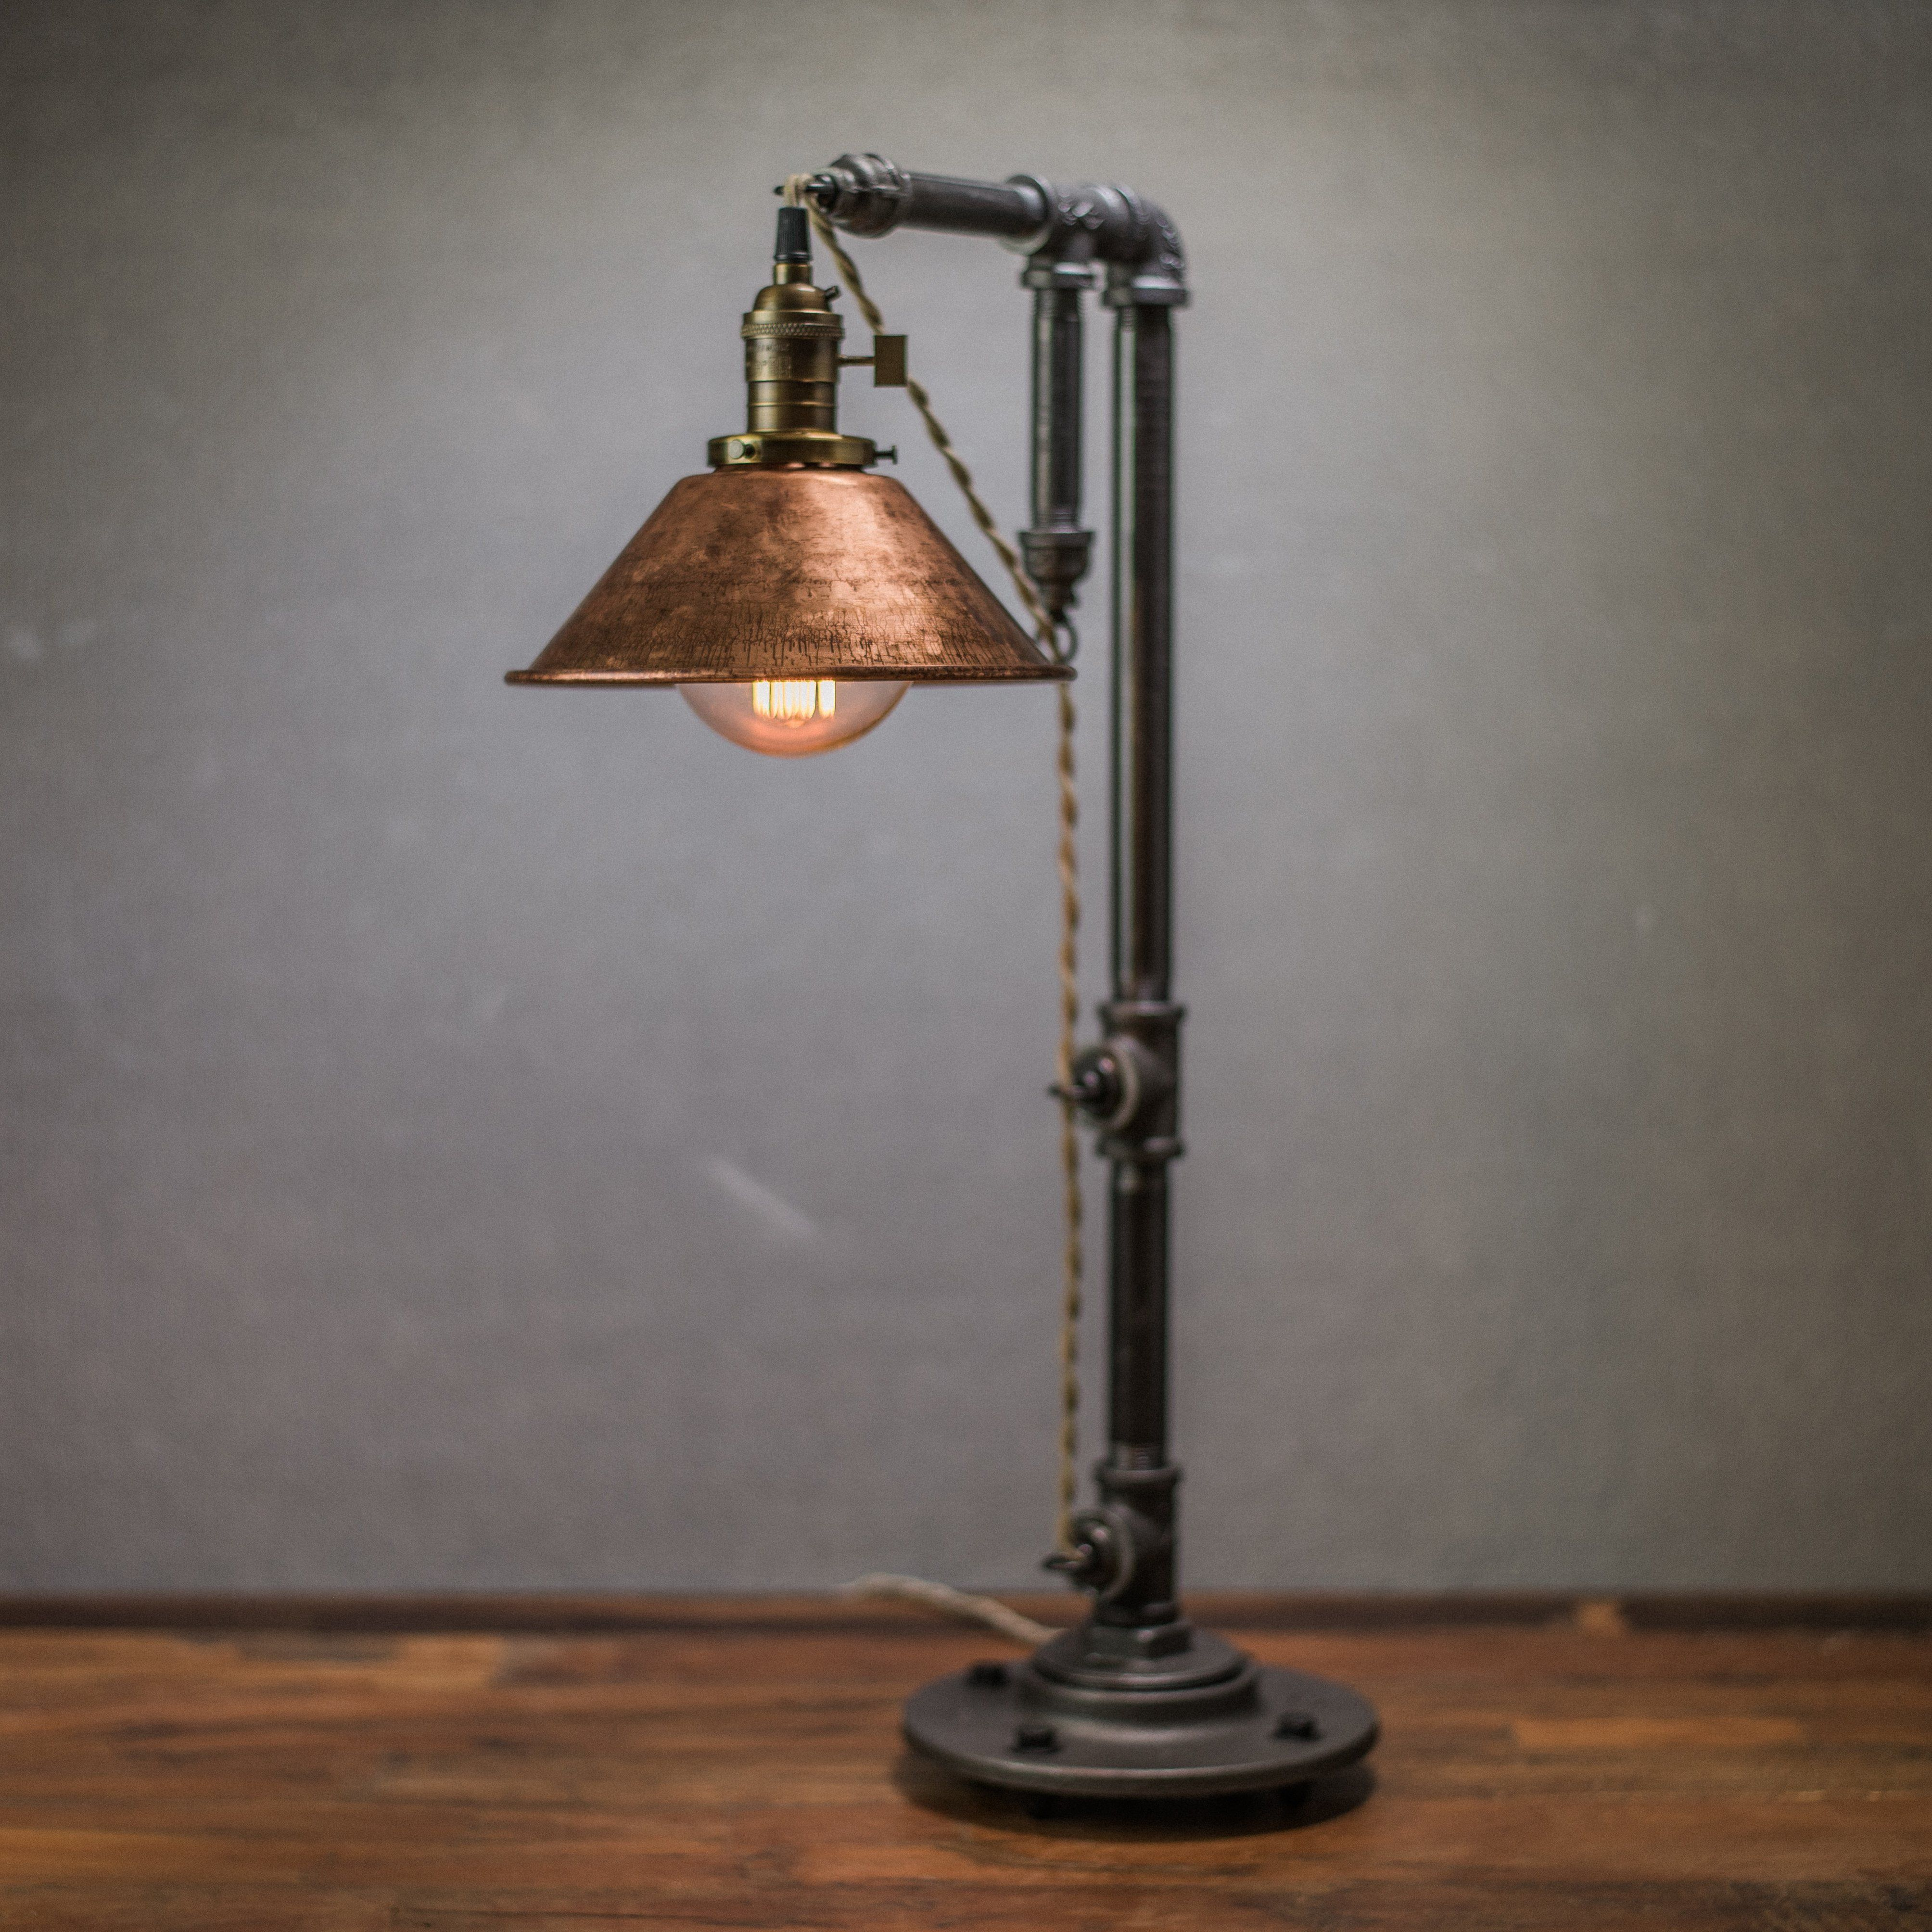 Hanging Table Lamp: Aged Copper Hanging Table Lamp